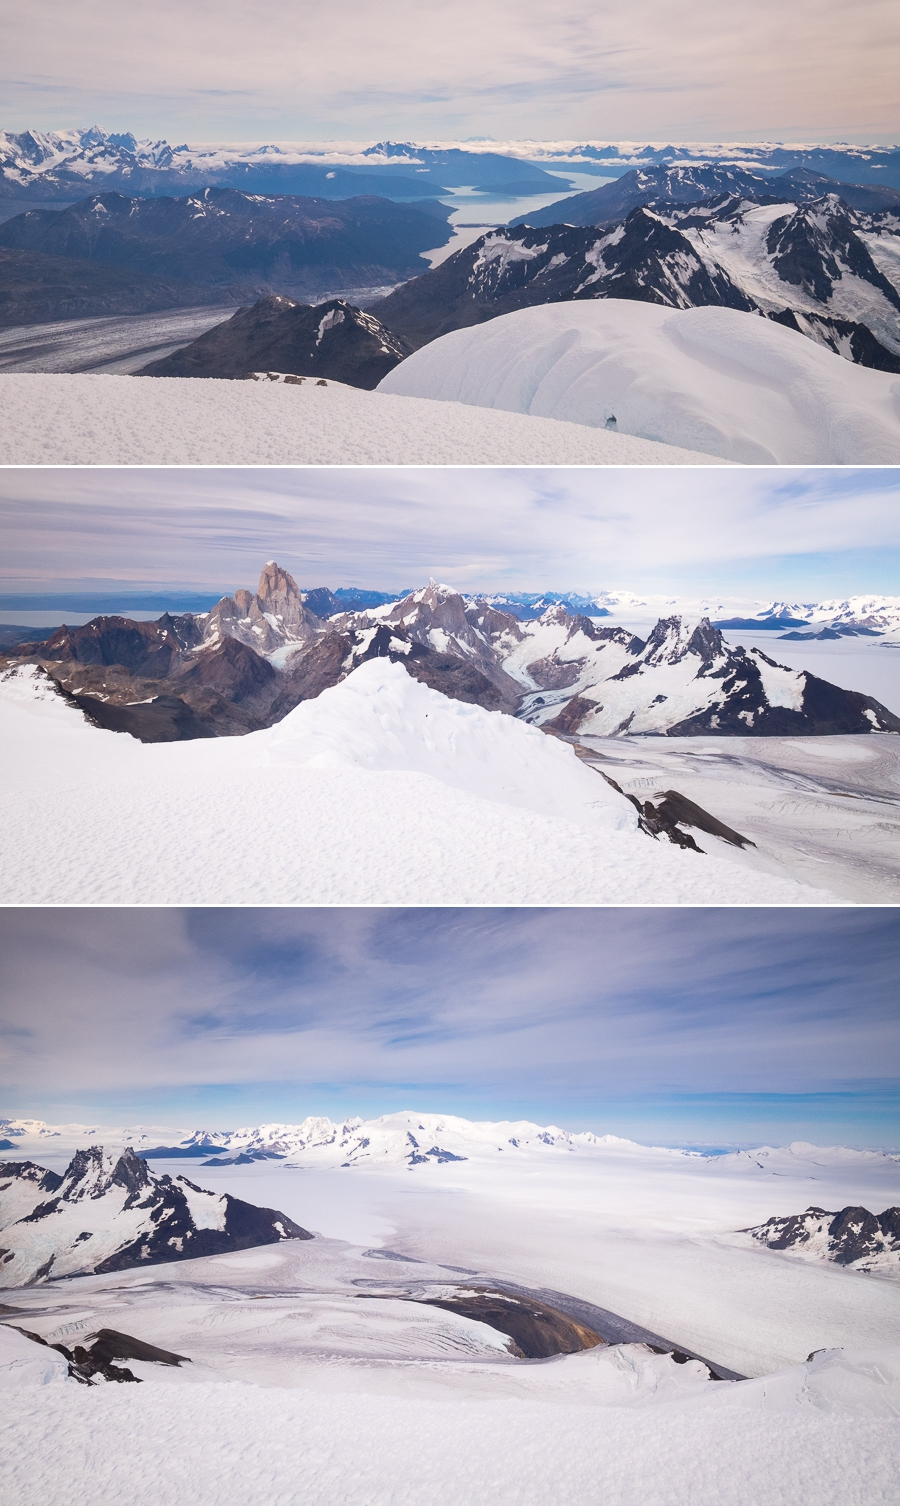 Views from the summit of Gorra Blanca - South Patagonia Icefield Expedition - Argentina